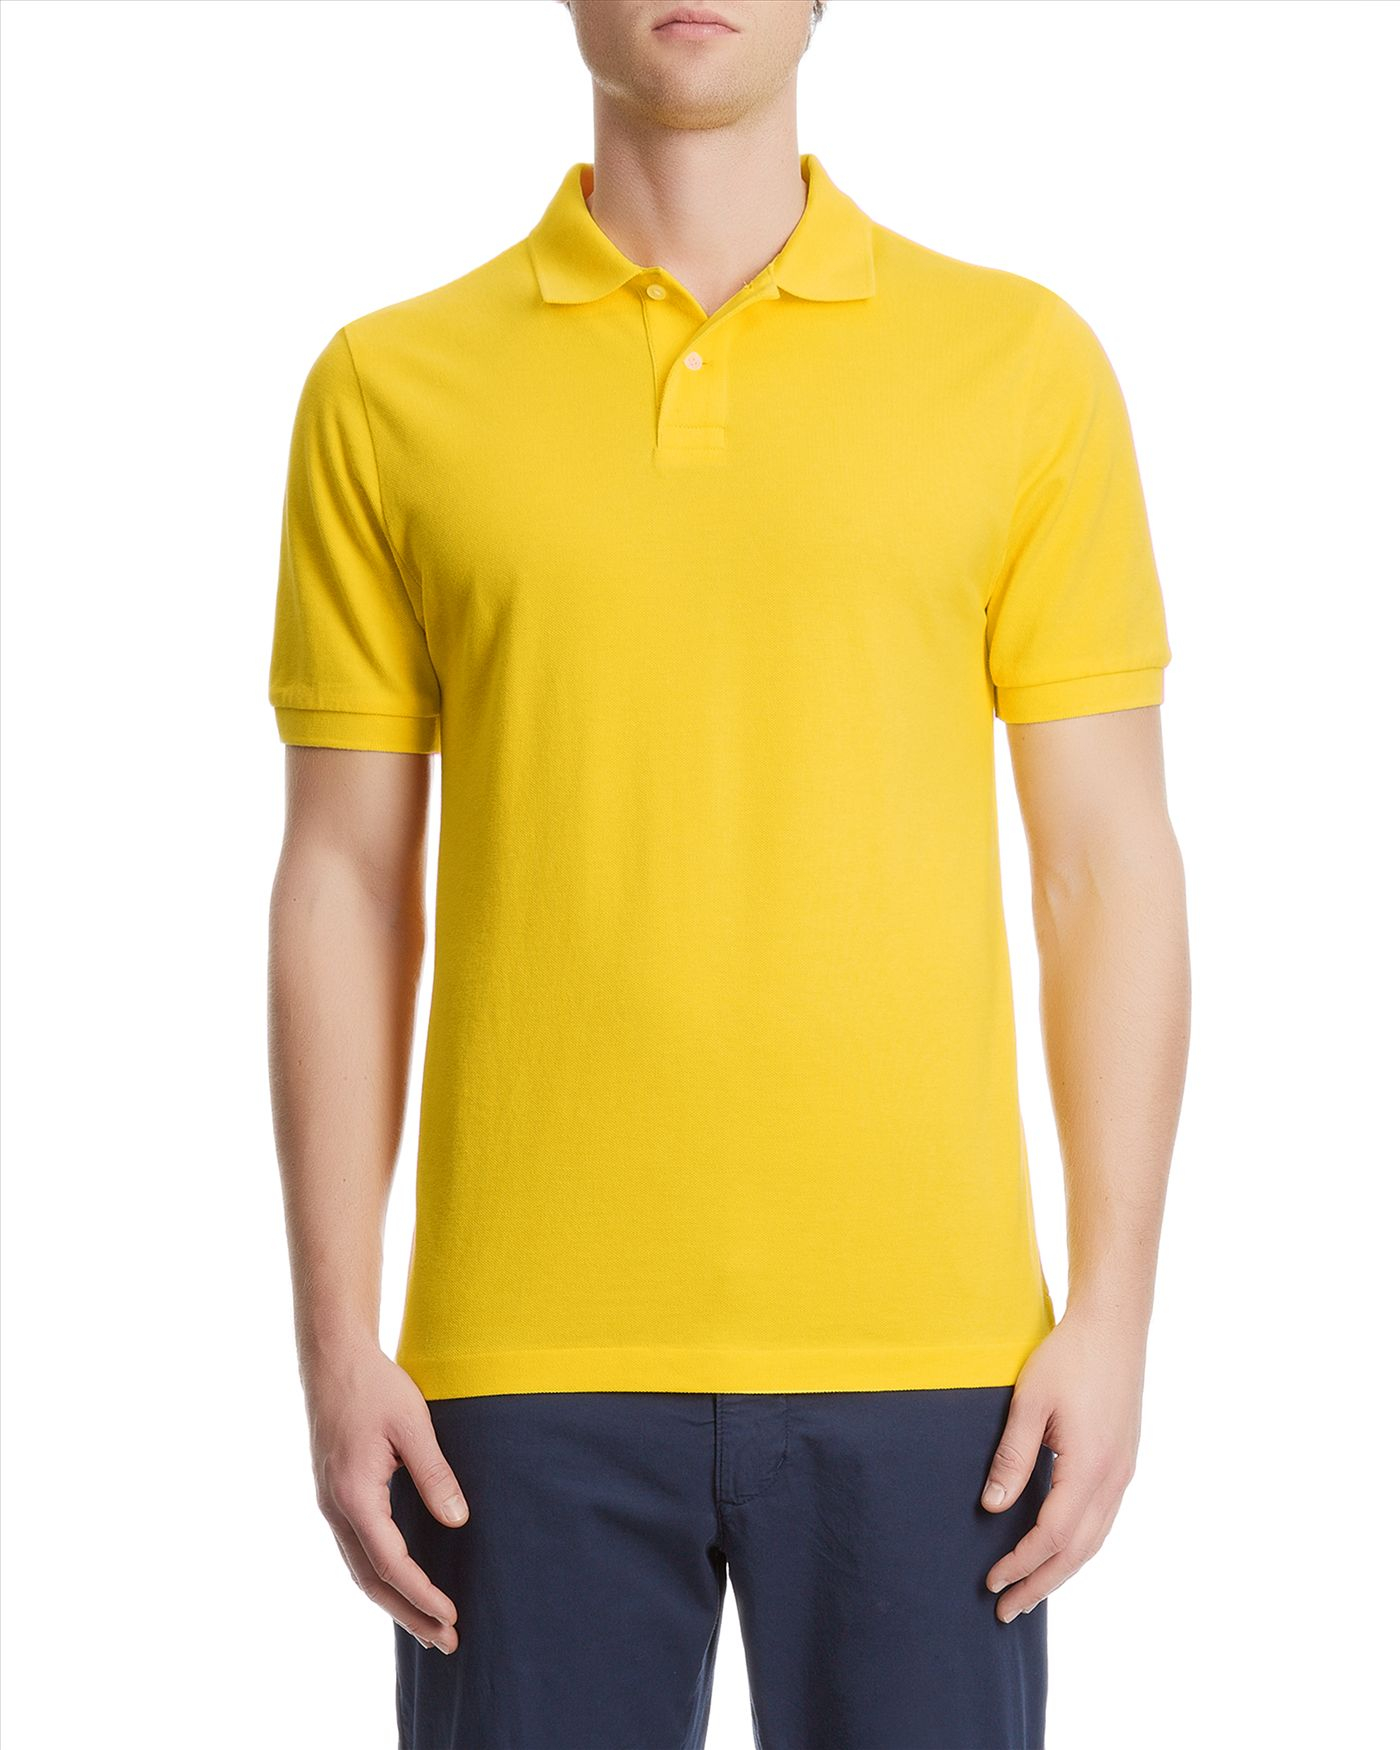 Lyst jaeger plain pique polo shirt in yellow for men Man in polo shirt